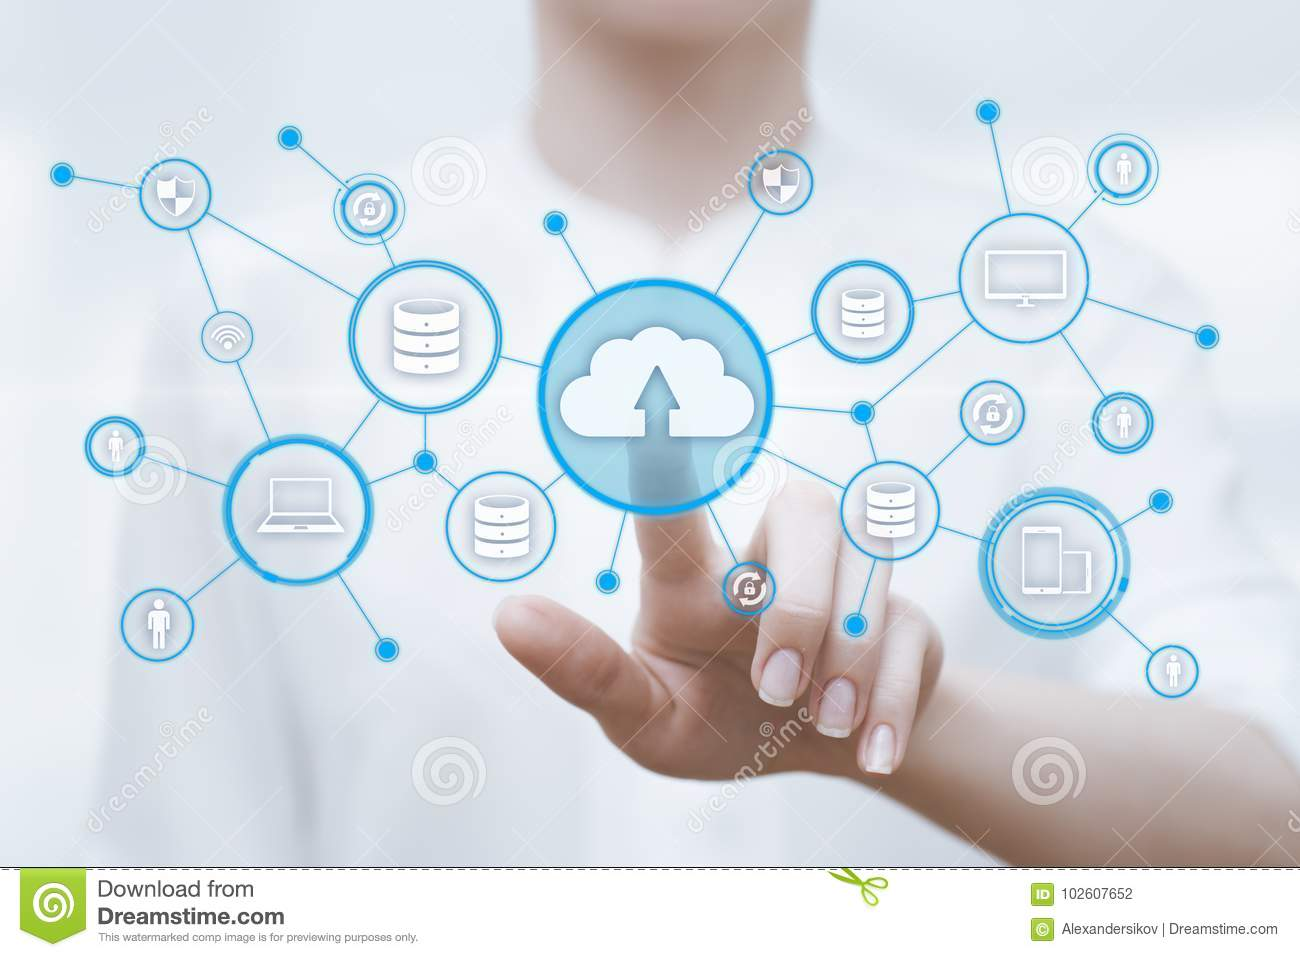 Cloud Computing Technology Internet Storage Network Concept